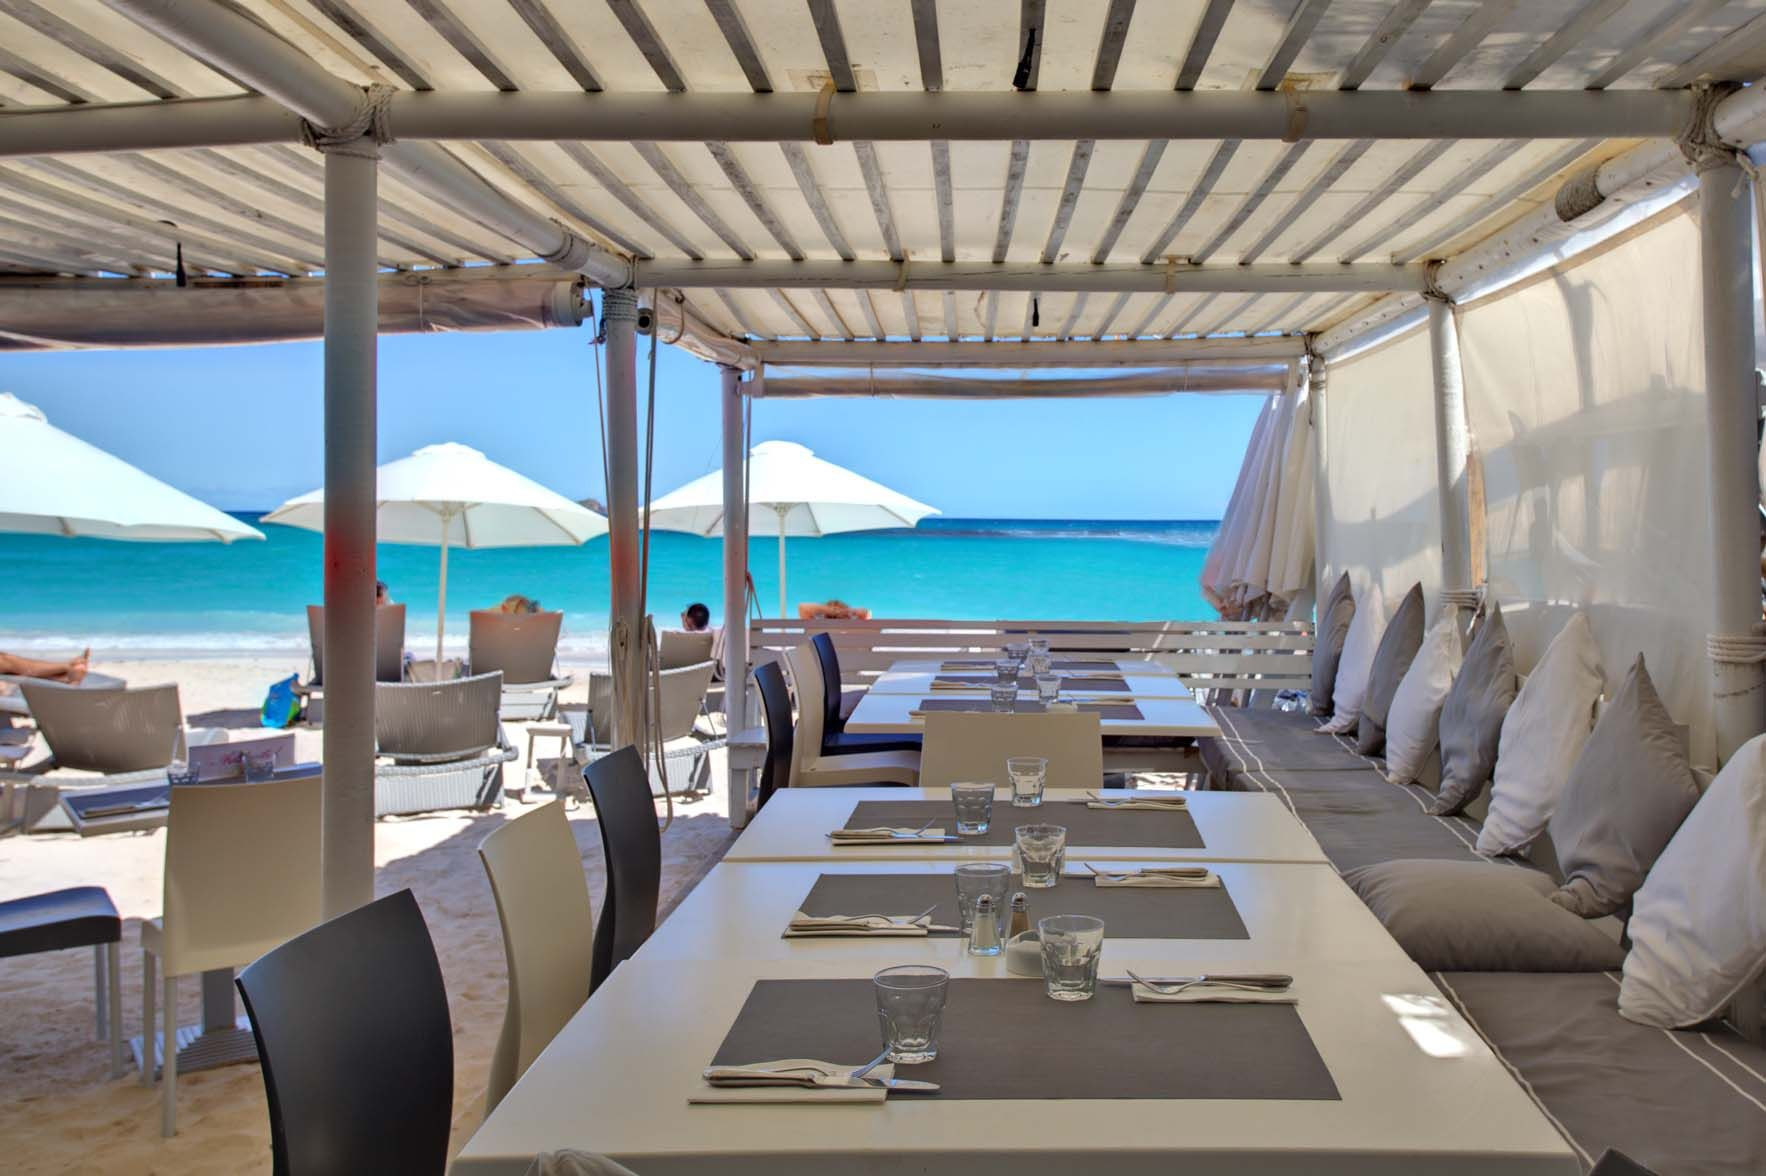 Tom Beach Hotel St Barths Online La Plage Restaurant Boutique Free In